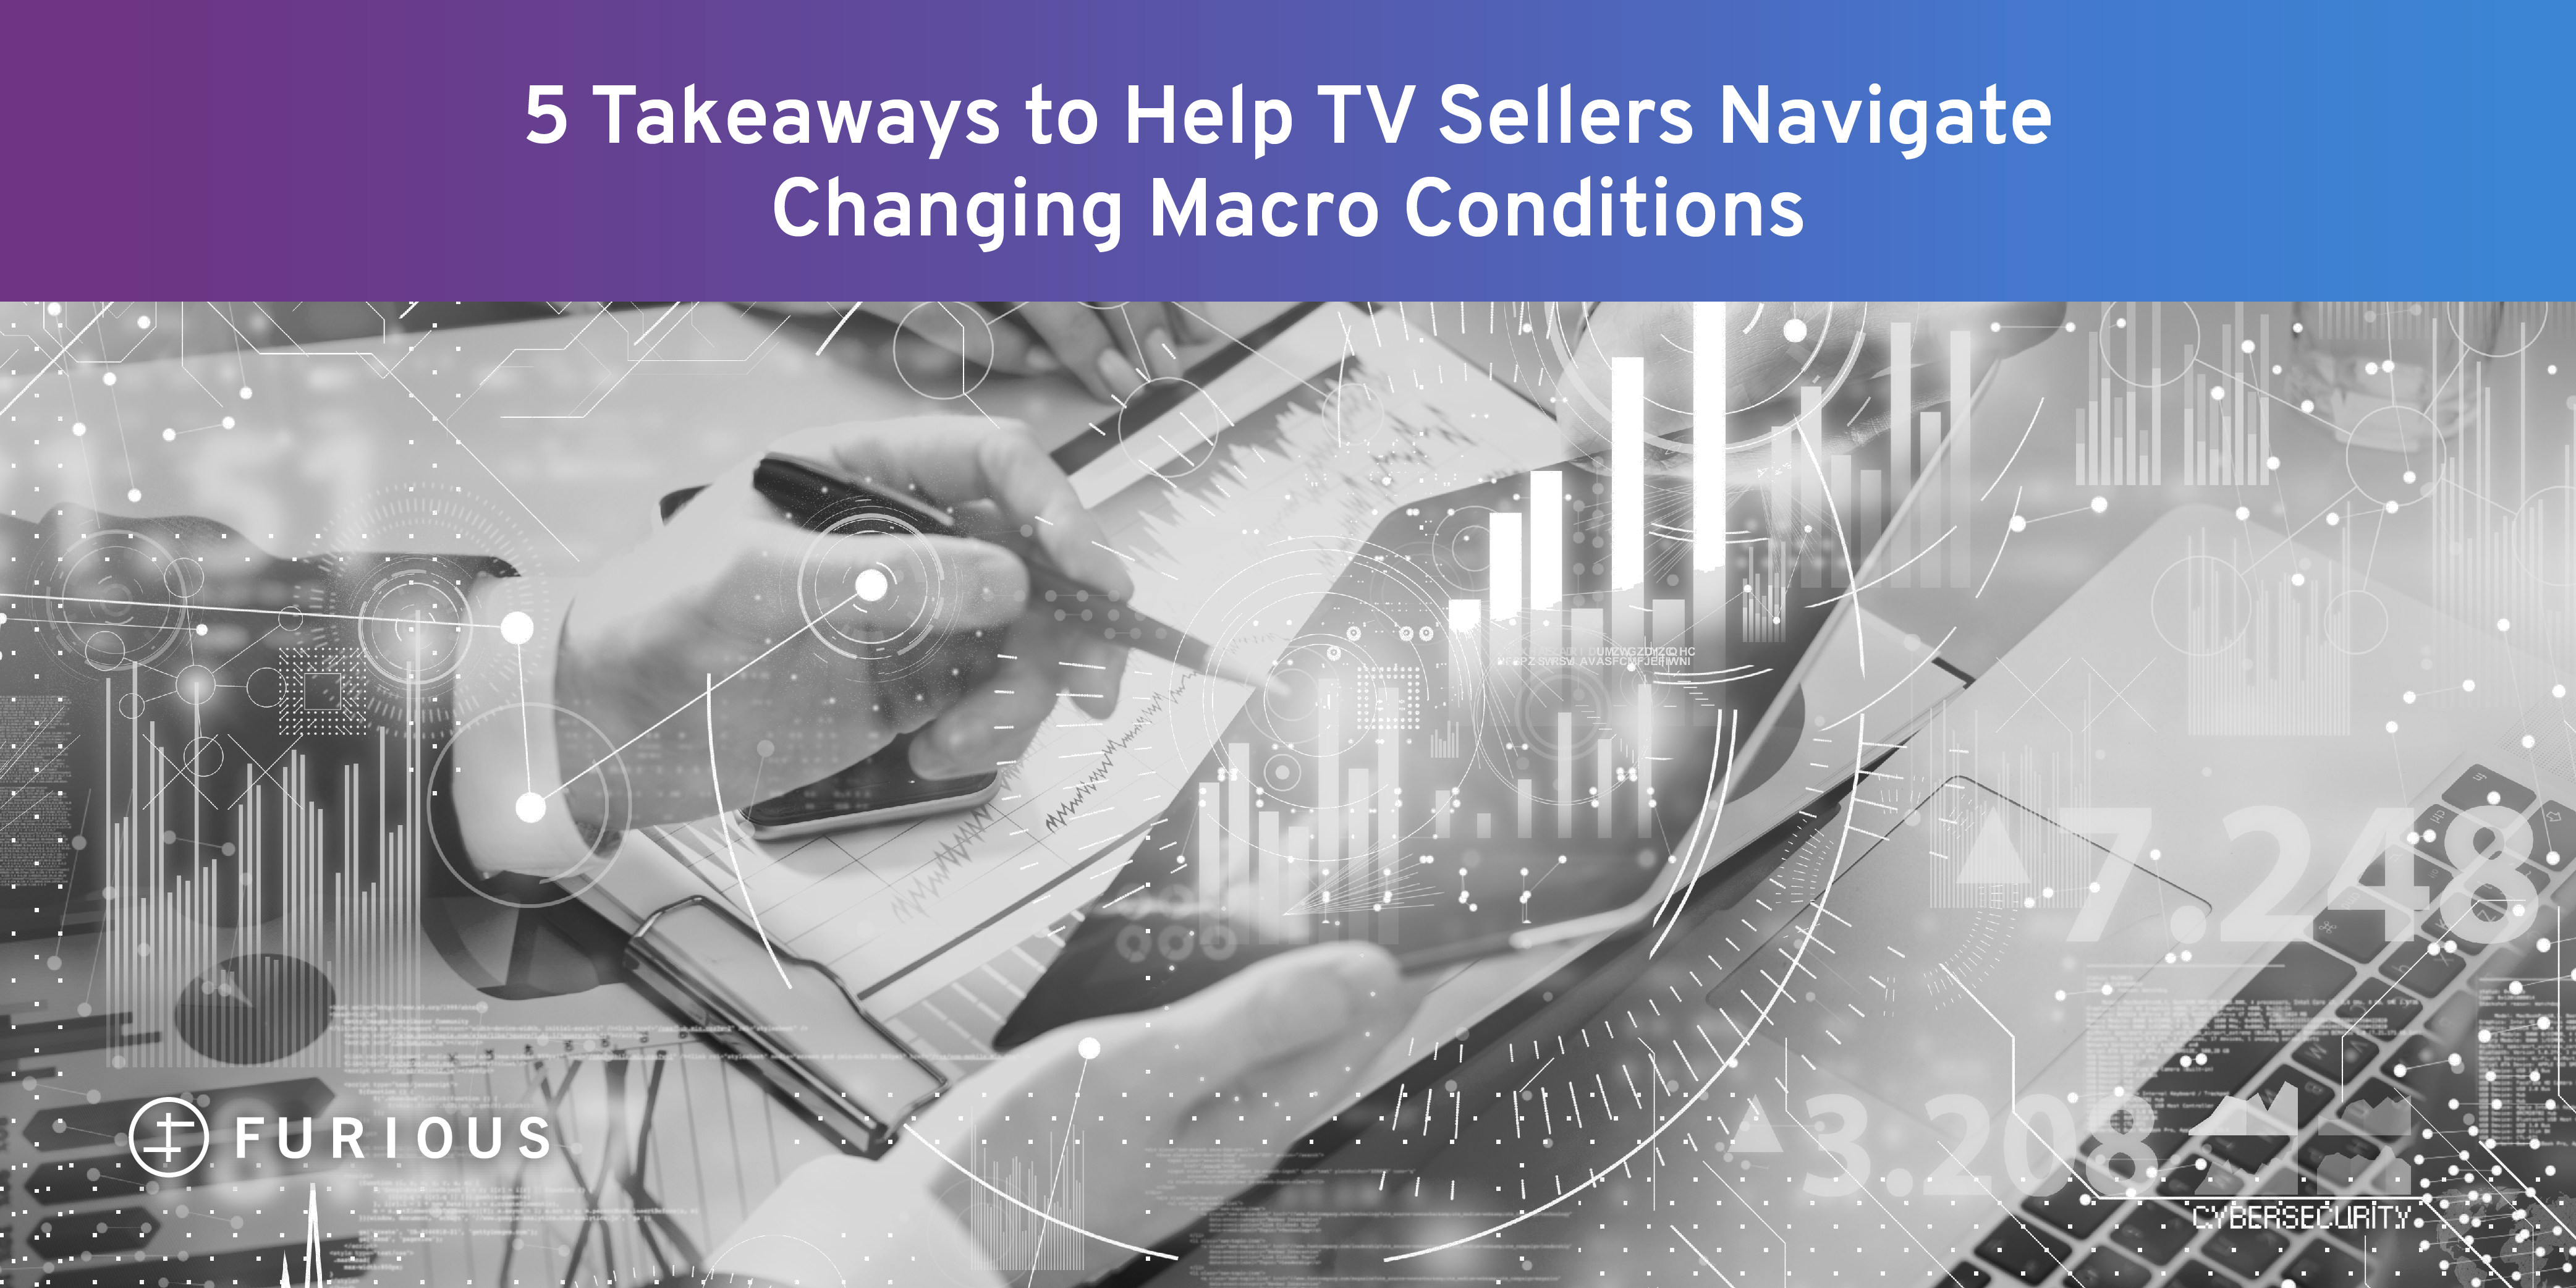 5 Takeaways to Help TV Sellers Navigate Changing Macro Conditions